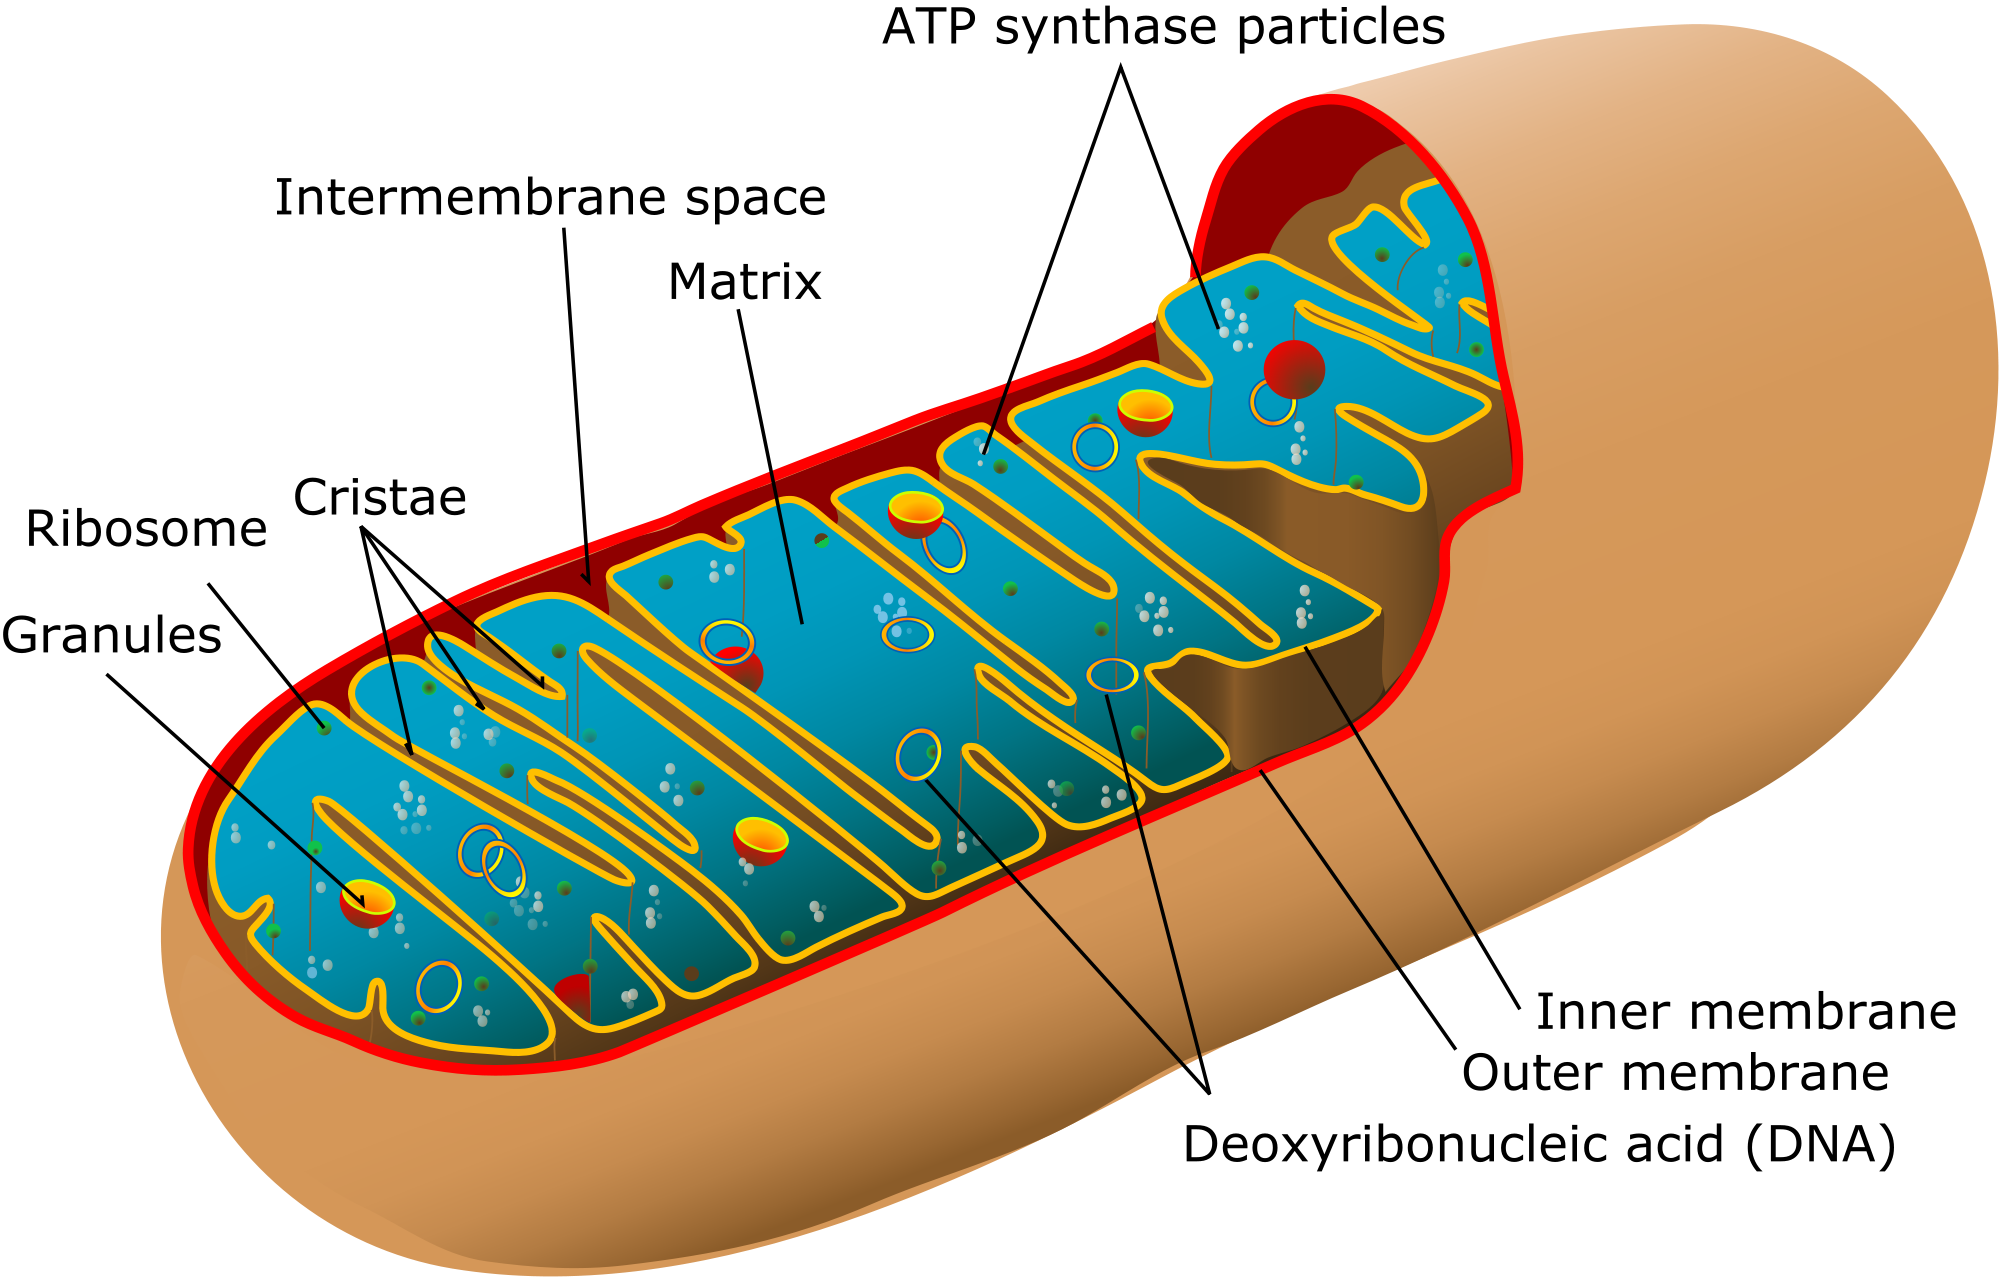 picture royalty free download Mitochondria structure function teachmephys. Ribosome drawing